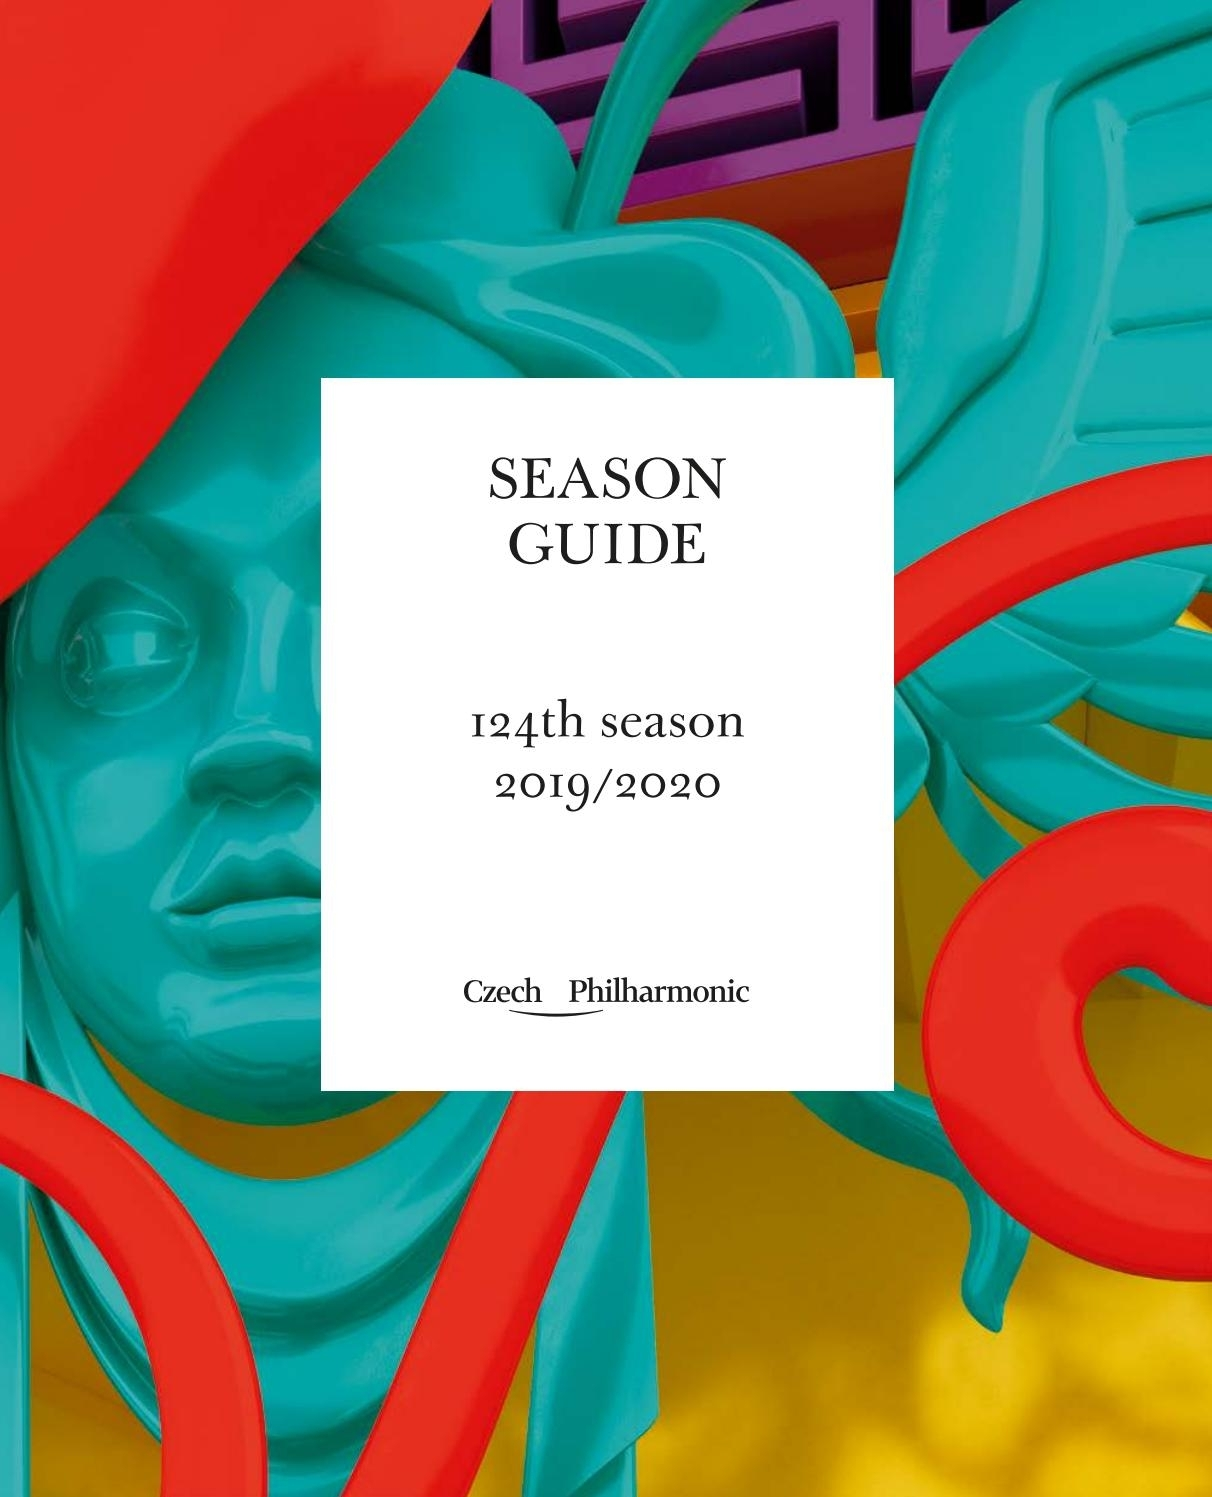 Czech Philharmonic: Season Guide For 124Th Season 2019/2020